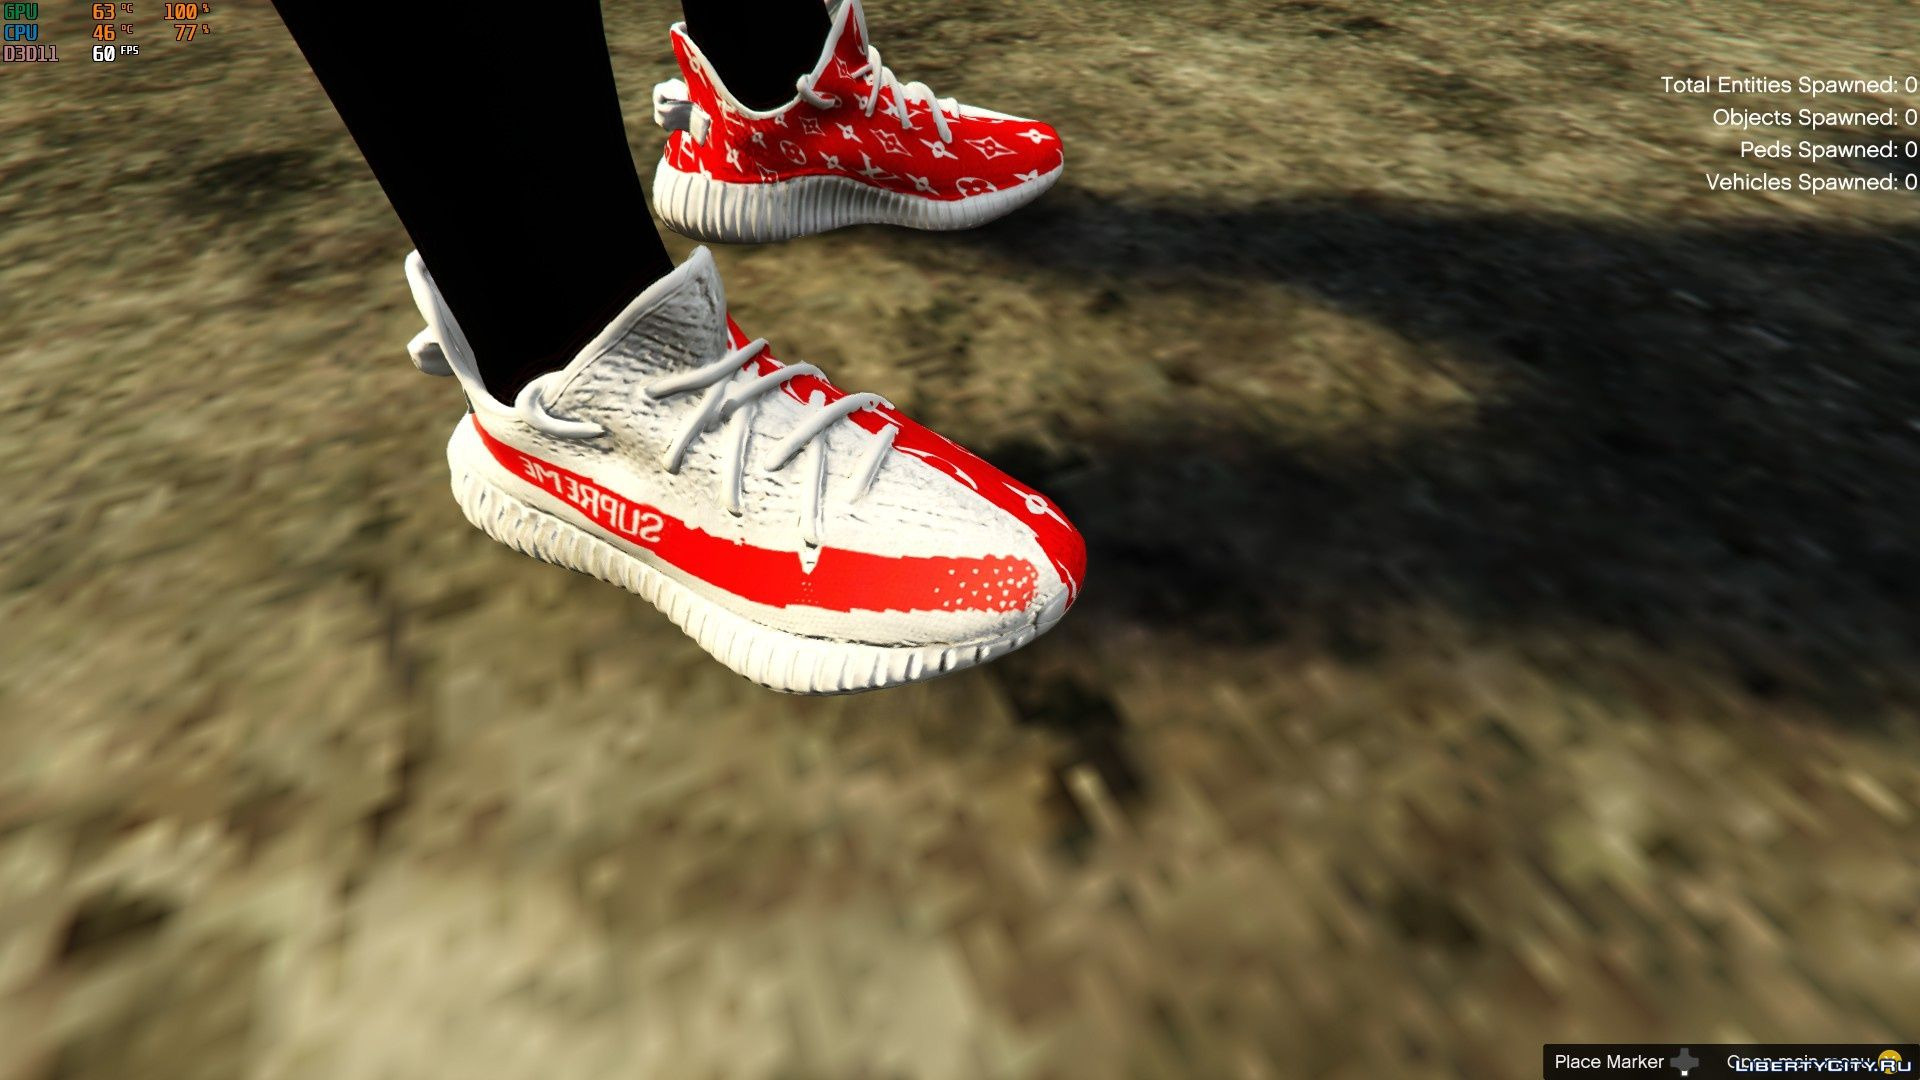 Louis Vuitton X Supreme Yeezy Sneakers For GTA 5